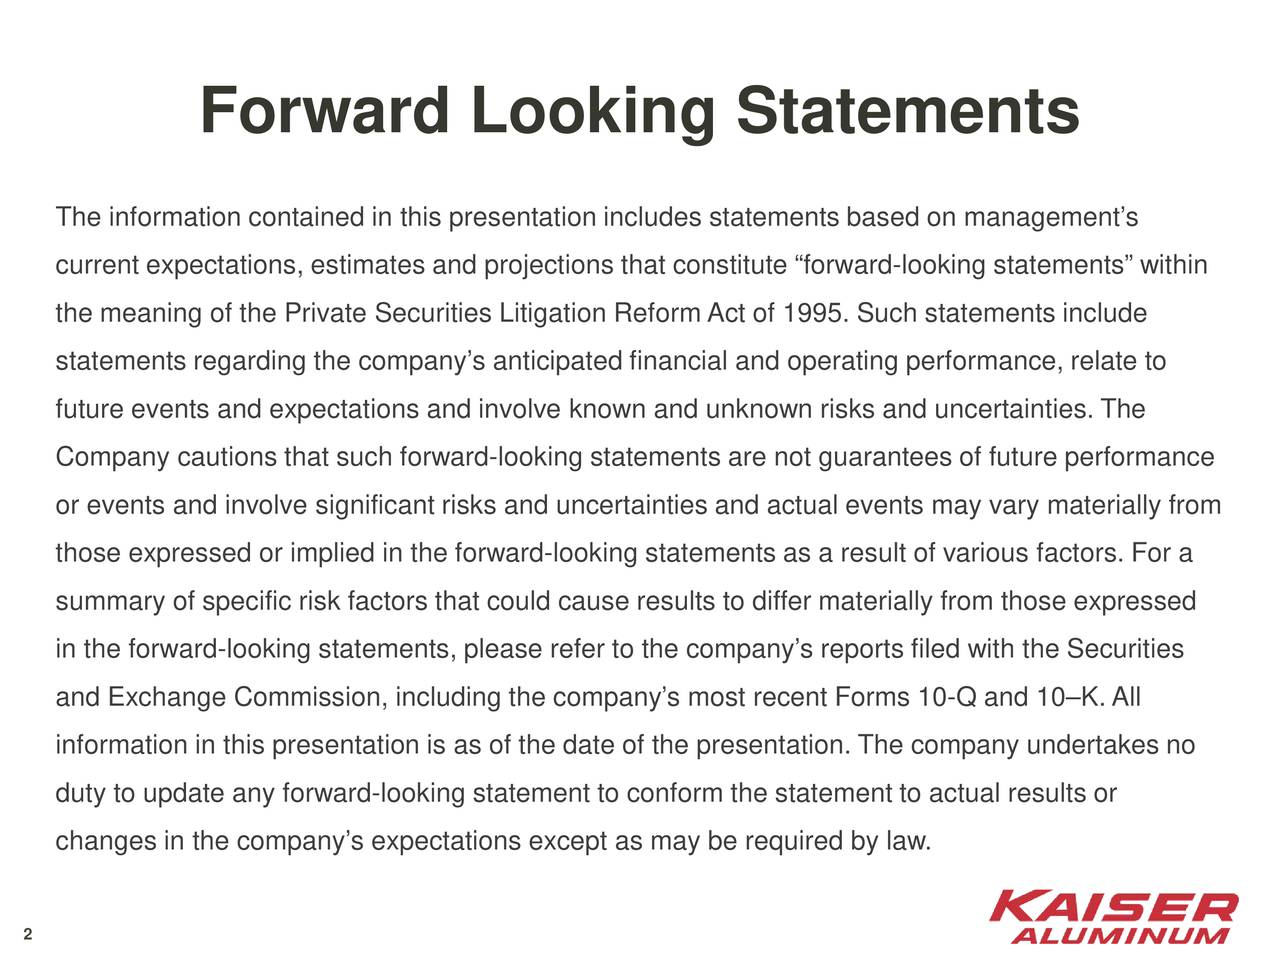 The information contained in this presentation includes statements based on managements current expectations, estimates and projections that constitute forward-looking statements within the meaning of the Private Securities Litigation Reform Act of 1995. Such statements include statements regarding the companys anticipated financial and operating performance, relate to future events and expectations and involve known and unknown risks and uncertainties. The Company cautions that such forward-looking statements are not guarantees of future performance or events and involve significant risks and uncertainties and actual events may vary materially from those expressed or implied in the forward-looking statements as a result of various factors. For a summary of specific risk factors that could cause results to differ materially from those expressed in the forward-looking statements, please refer to the companys reports filed with the Securities and Exchange Commission, including the companys most recent Forms 10-Q and 10K. All information in this presentation is as of the date of the presentation. The company undertakes no duty to update any forward-looking statement to conform the statement to actual results or changes in the companys expectations except as may be required by law. 2